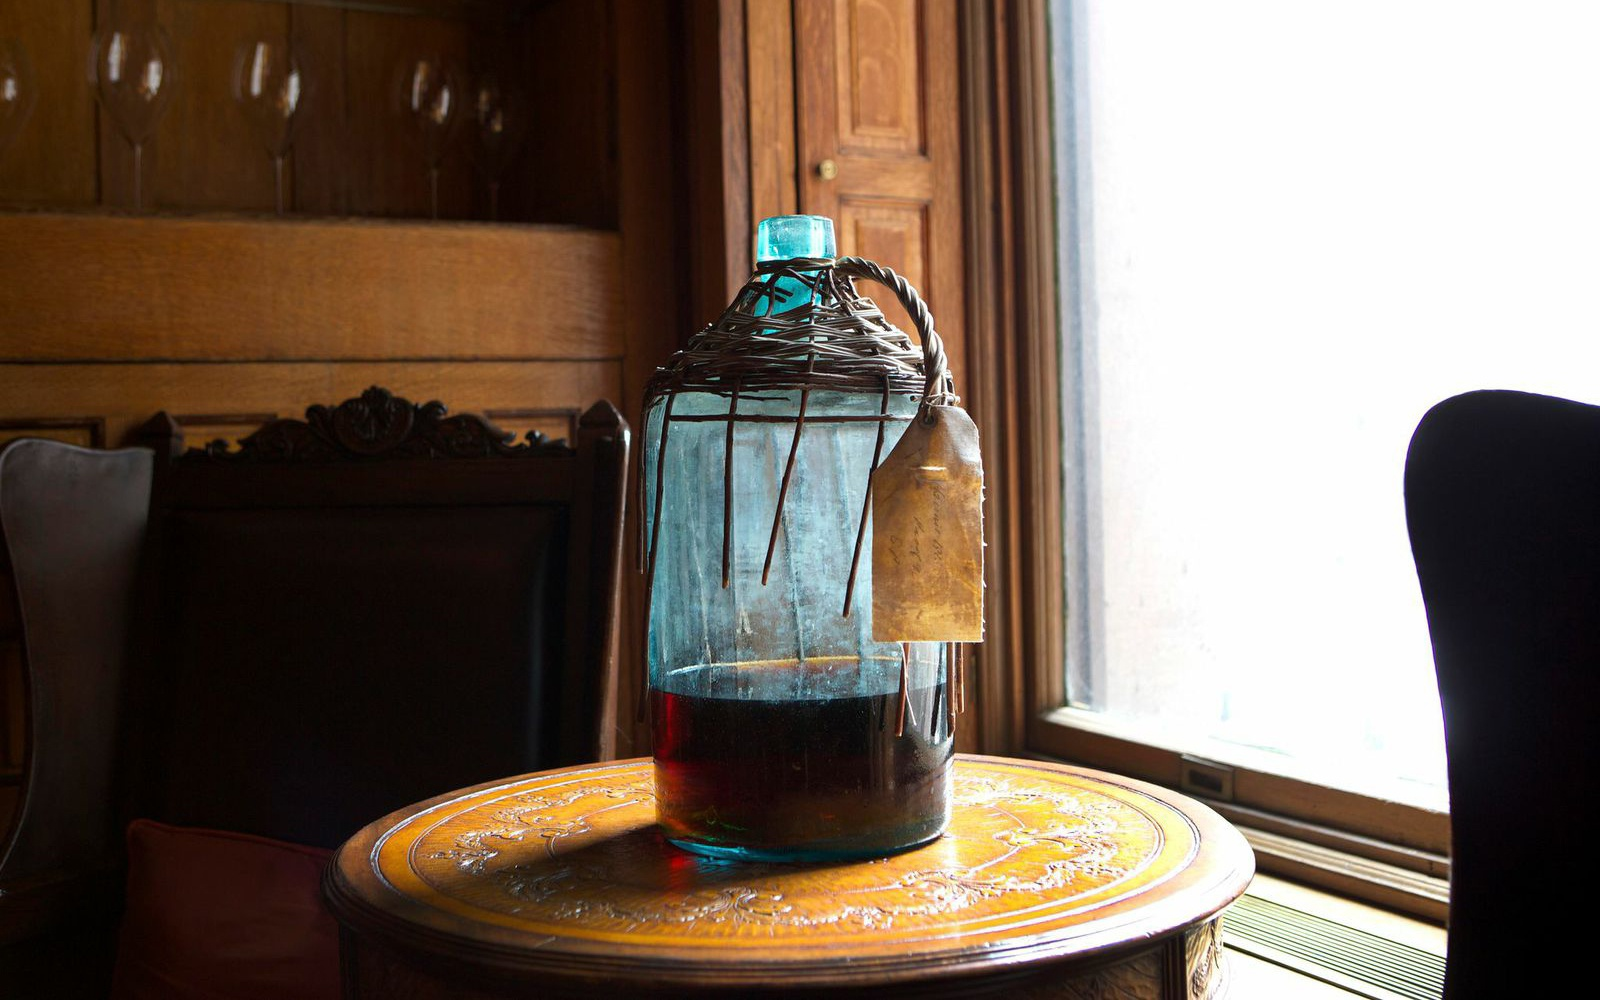 Glass jug on table near window